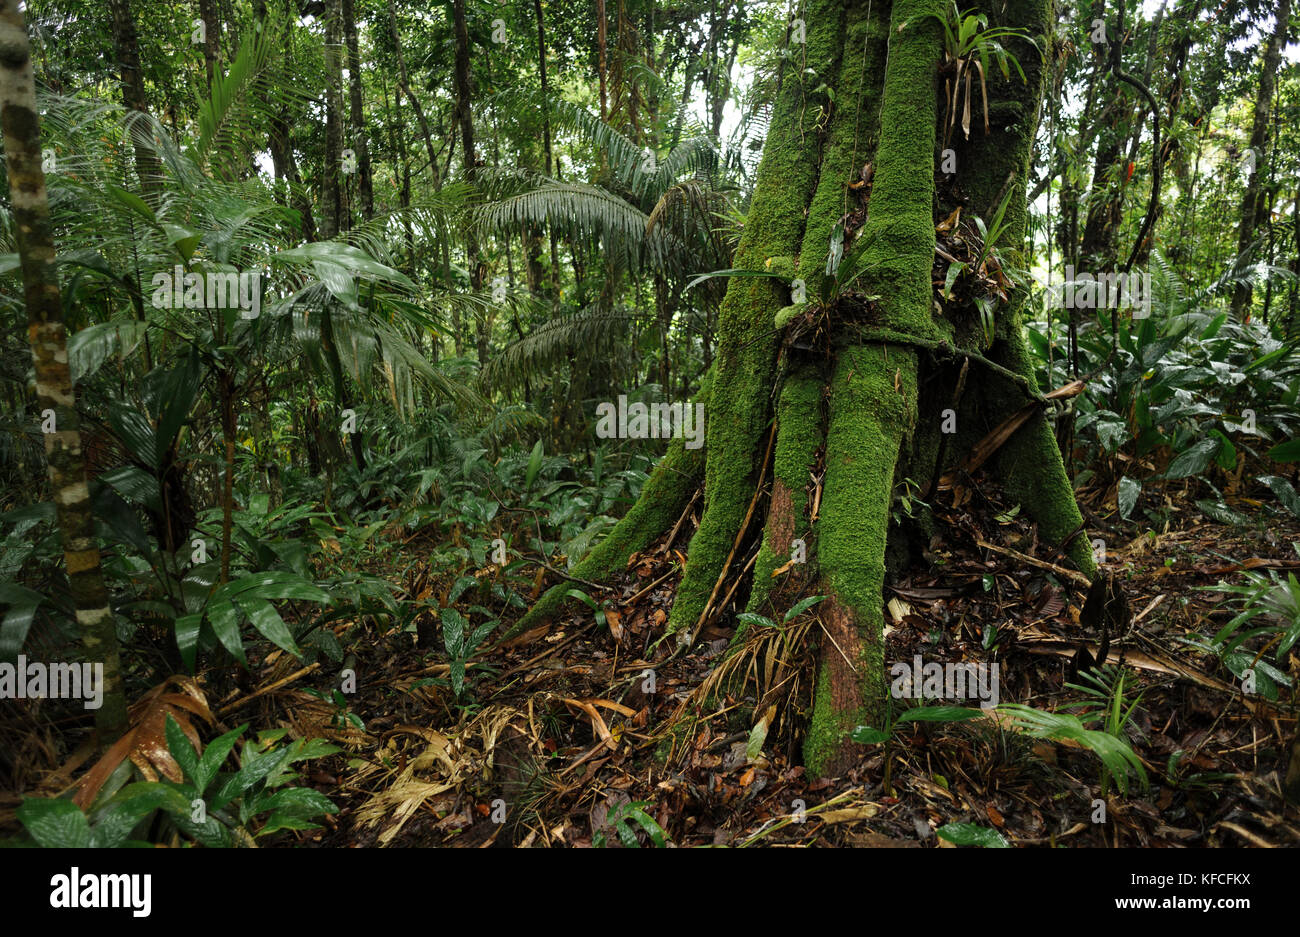 Atlantic Rainforest understory, SE Brazil - Stock Image